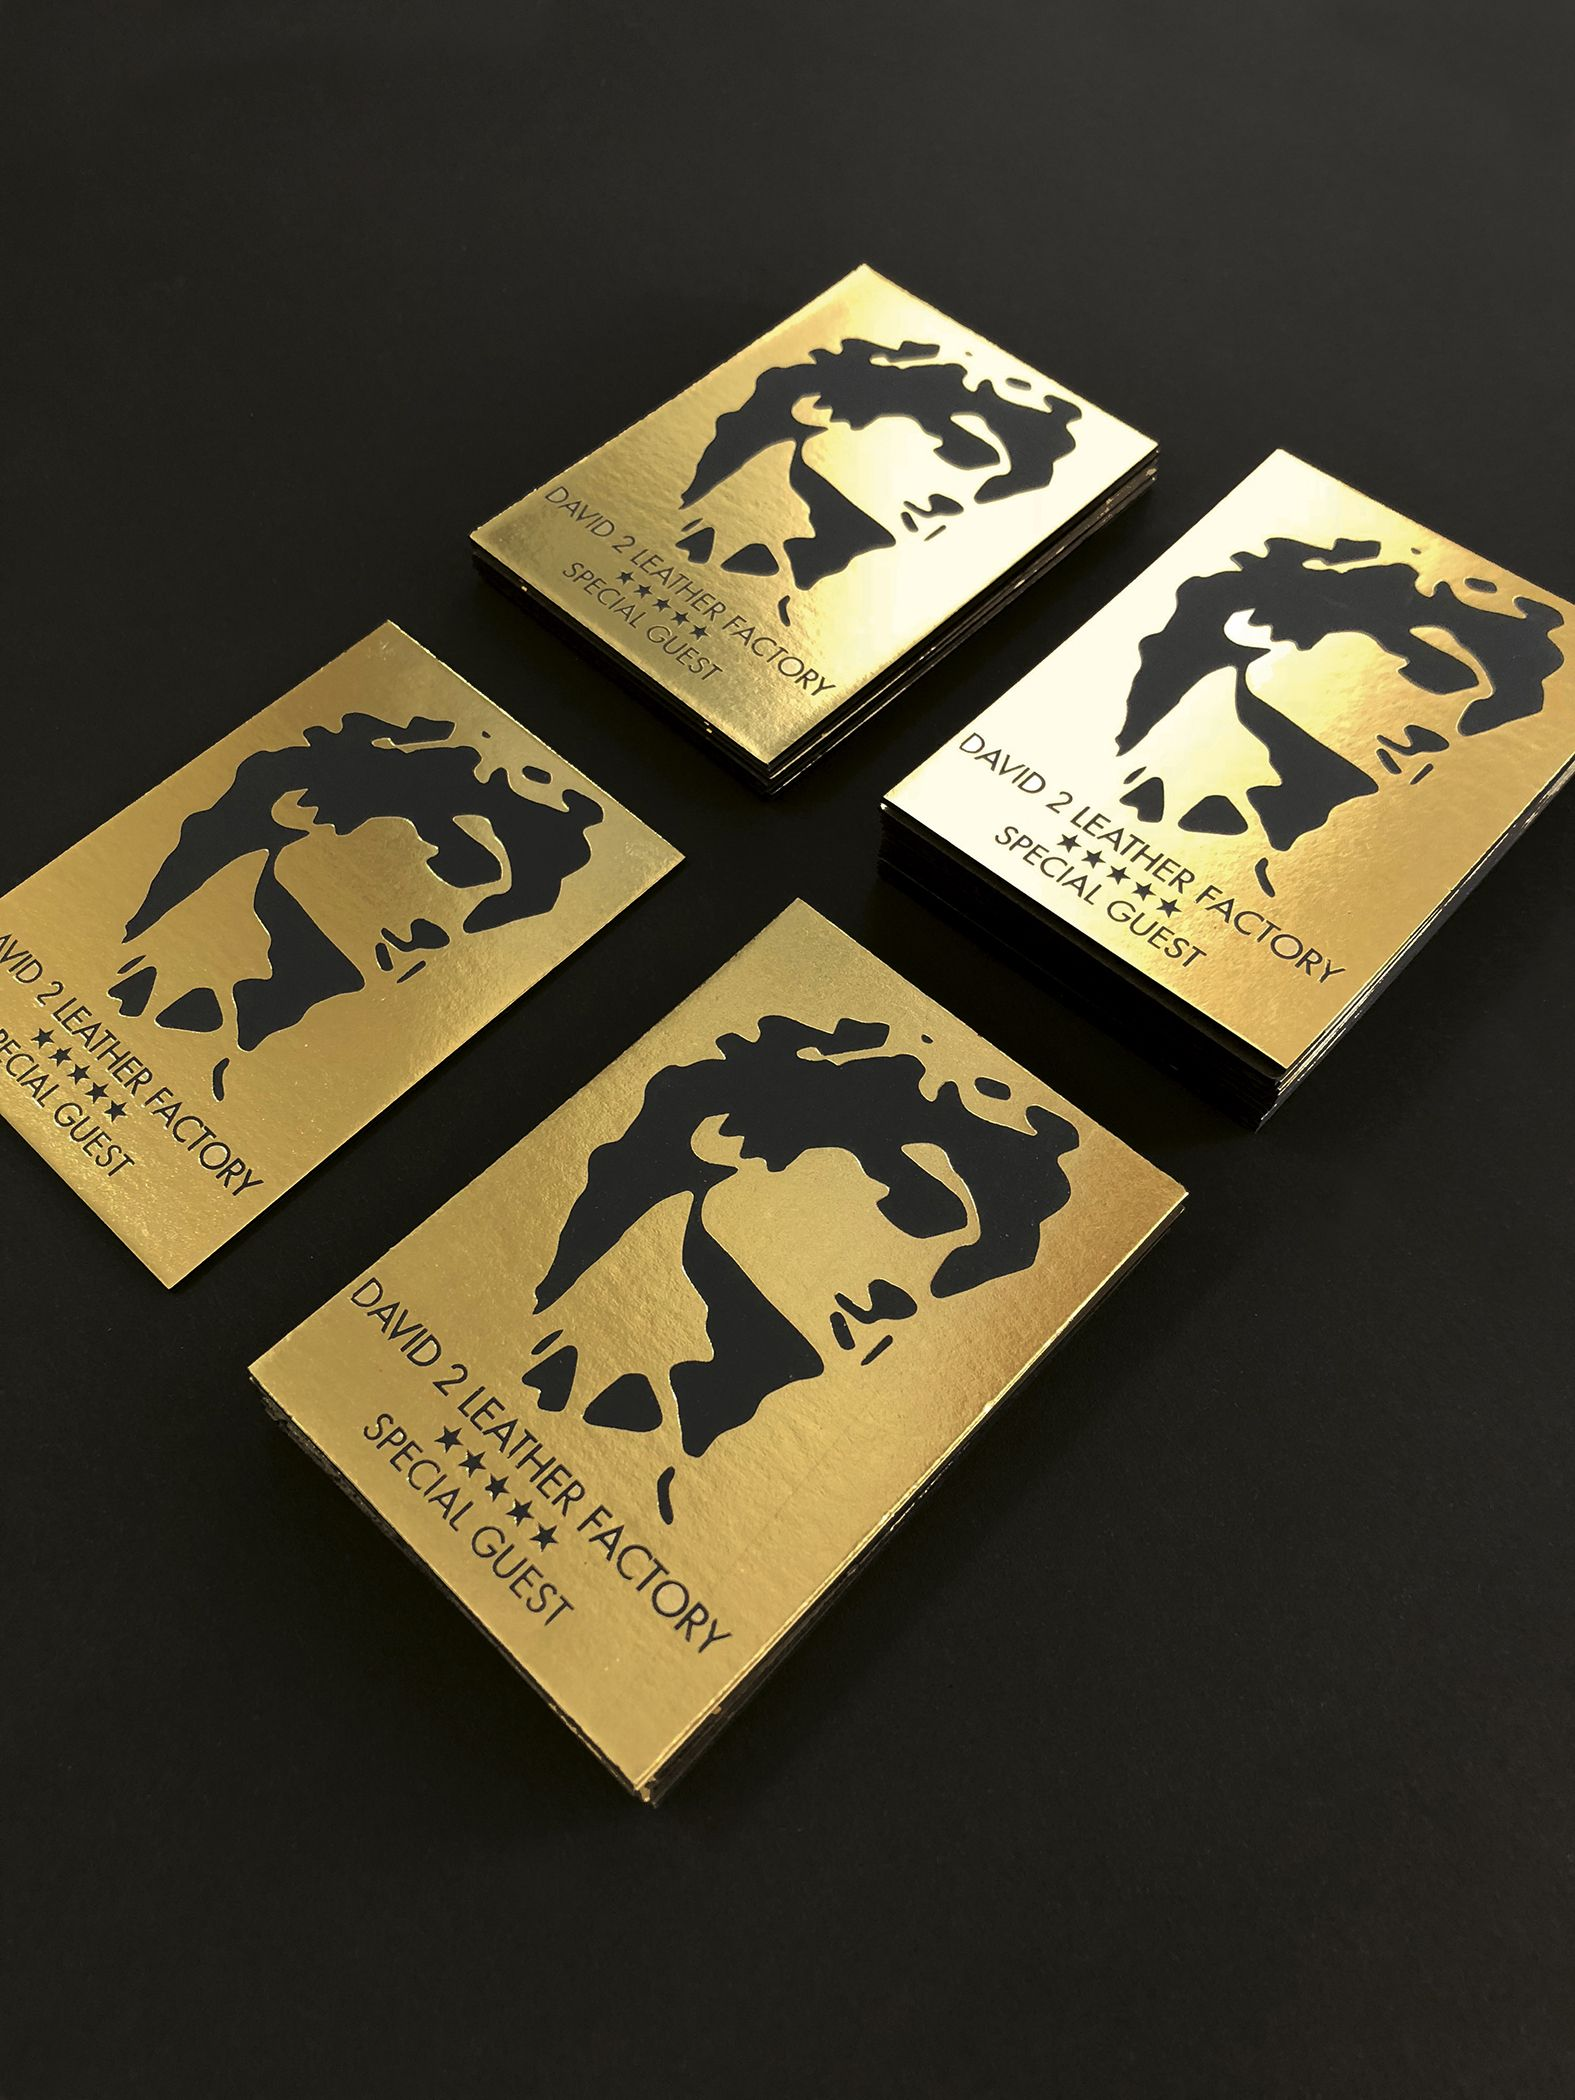 Sophisticated business cards on black paper 850 gr thick and gold ...